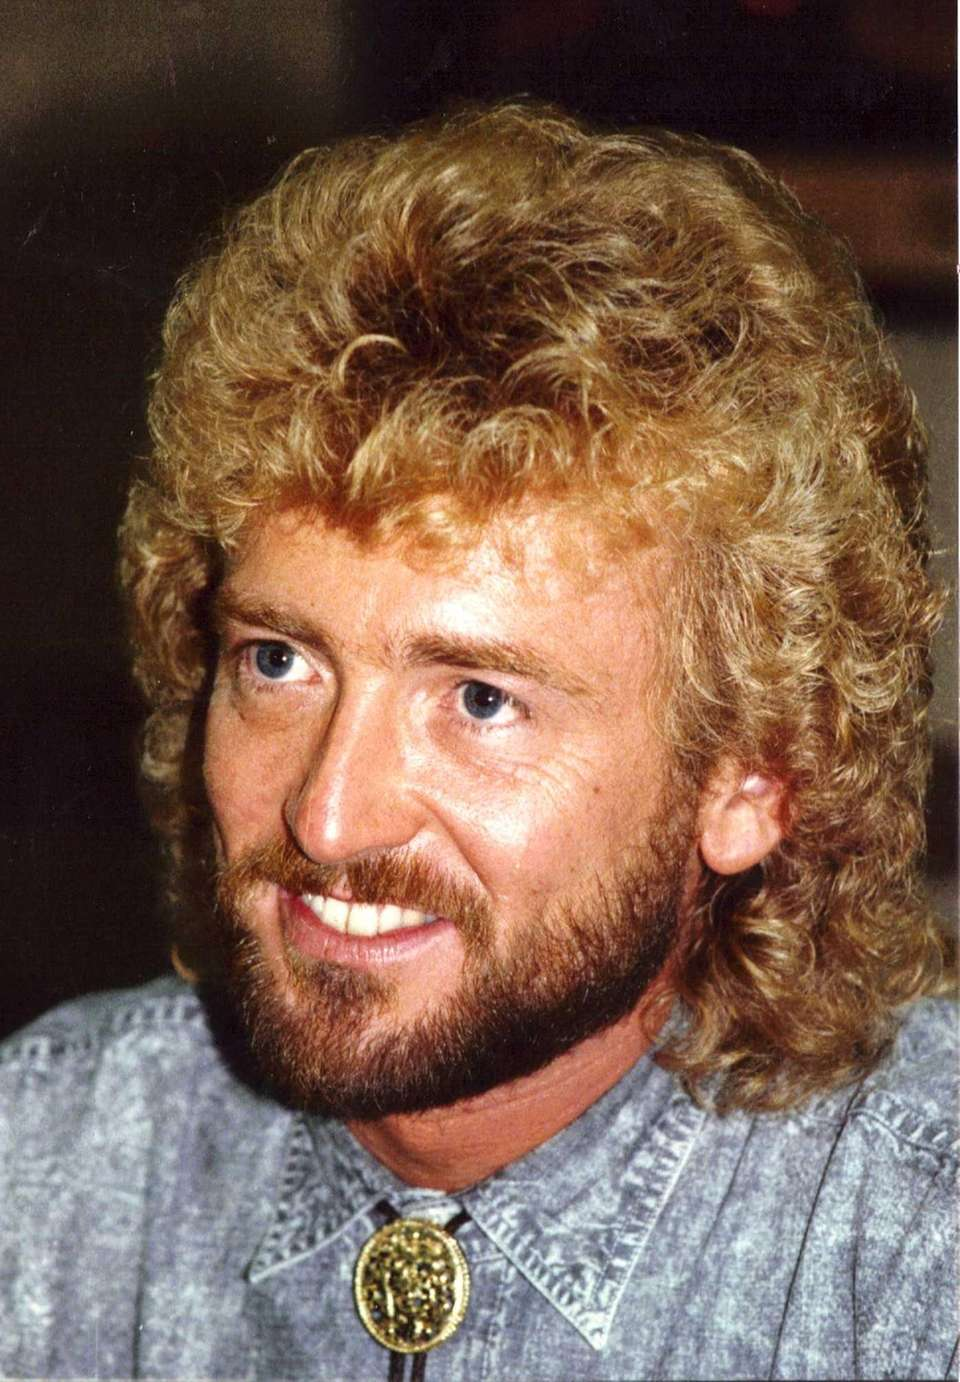 Keith Whitley had three No. 1 singles from